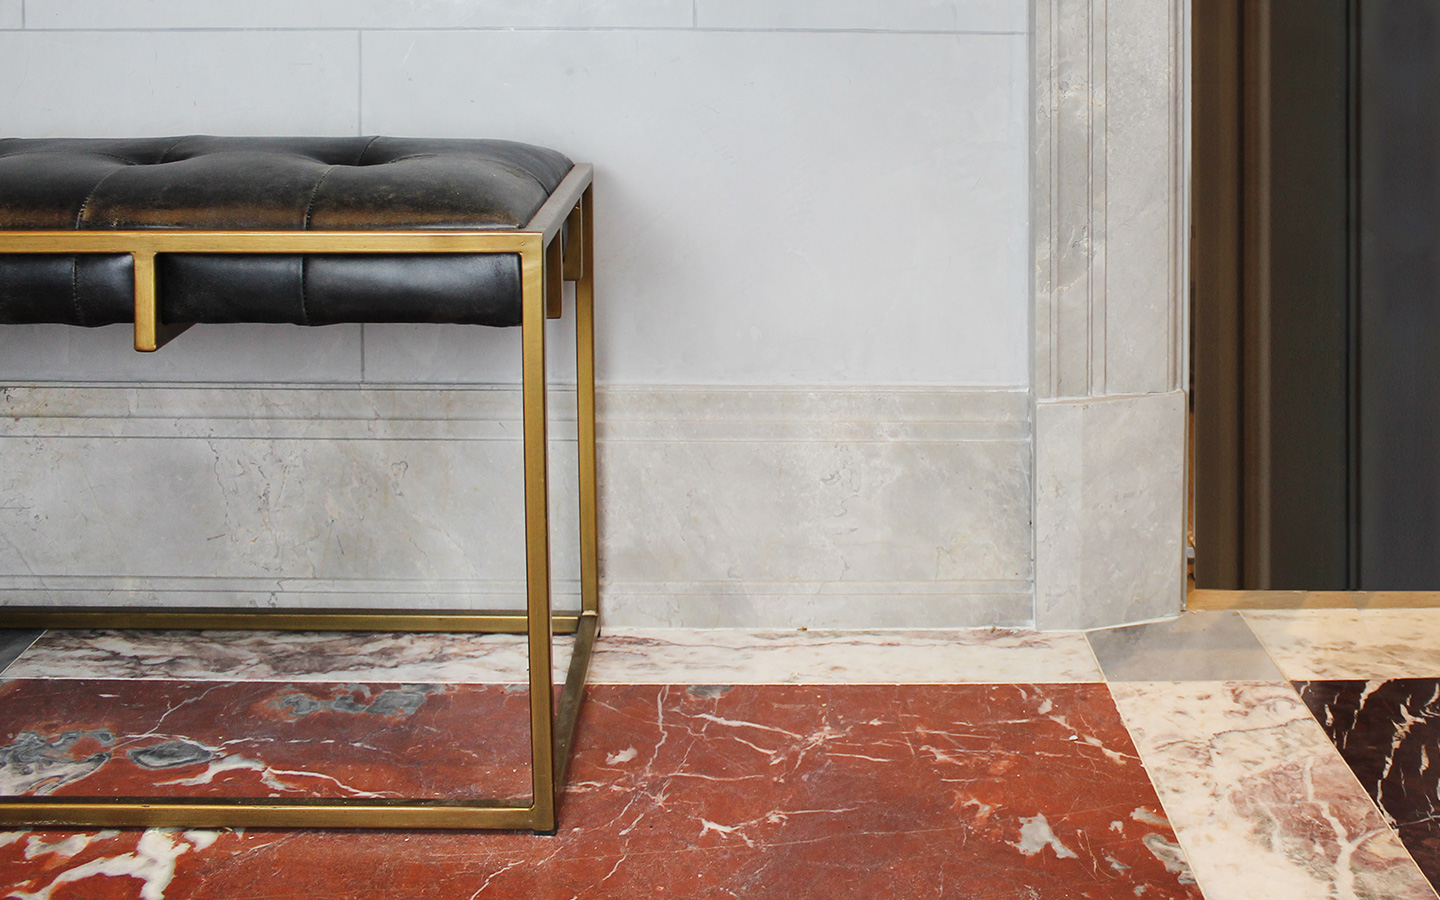 Marble flooring and skirting